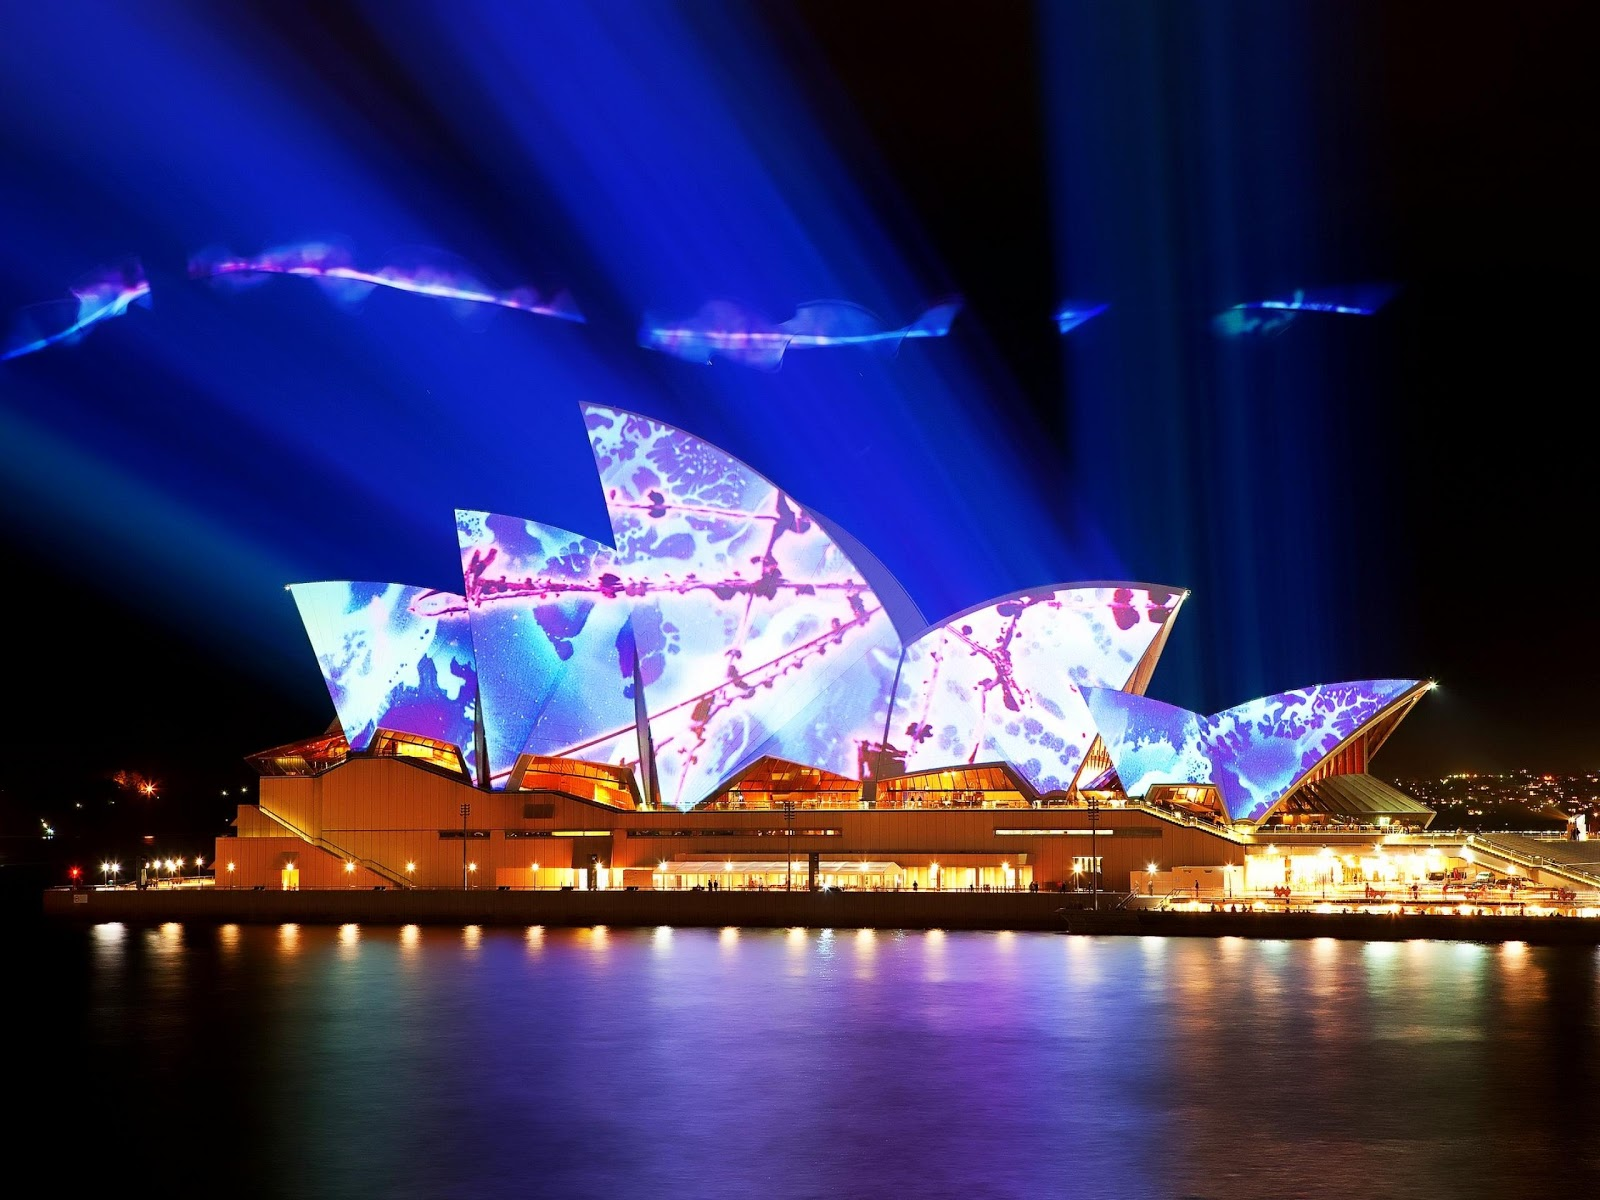 Opera House+Sydney+Australia+34 - Get Picture Of Sydney Opera House Australia  PNG